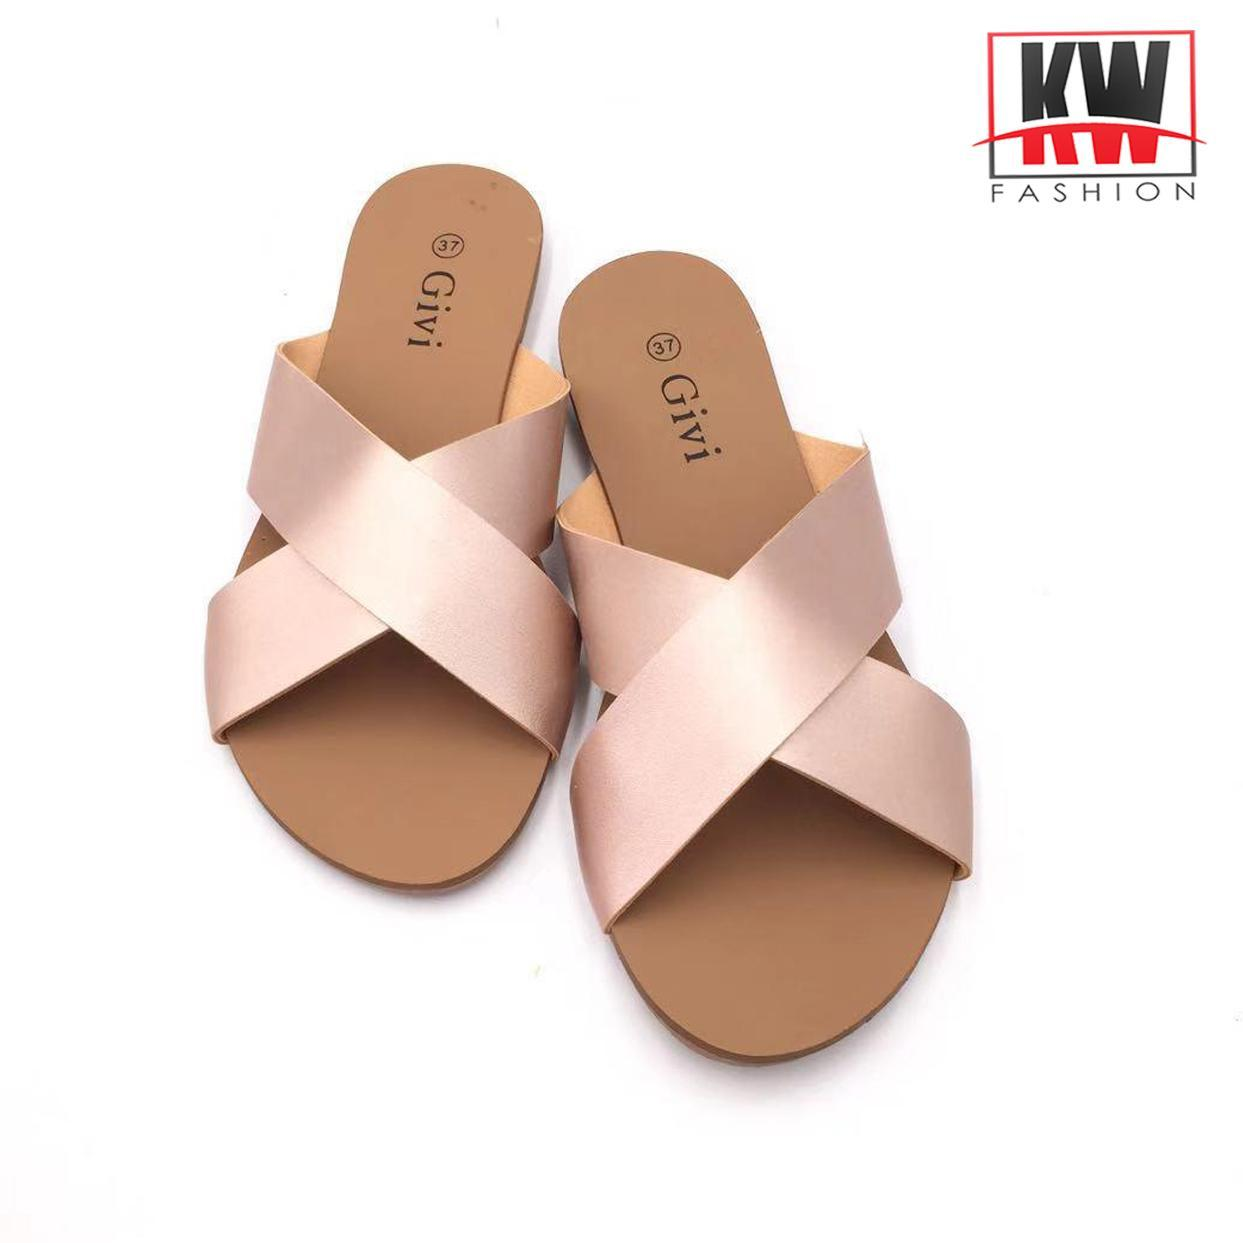 ddede7cec Womens Sandals for sale - Ladies Sandals online brands